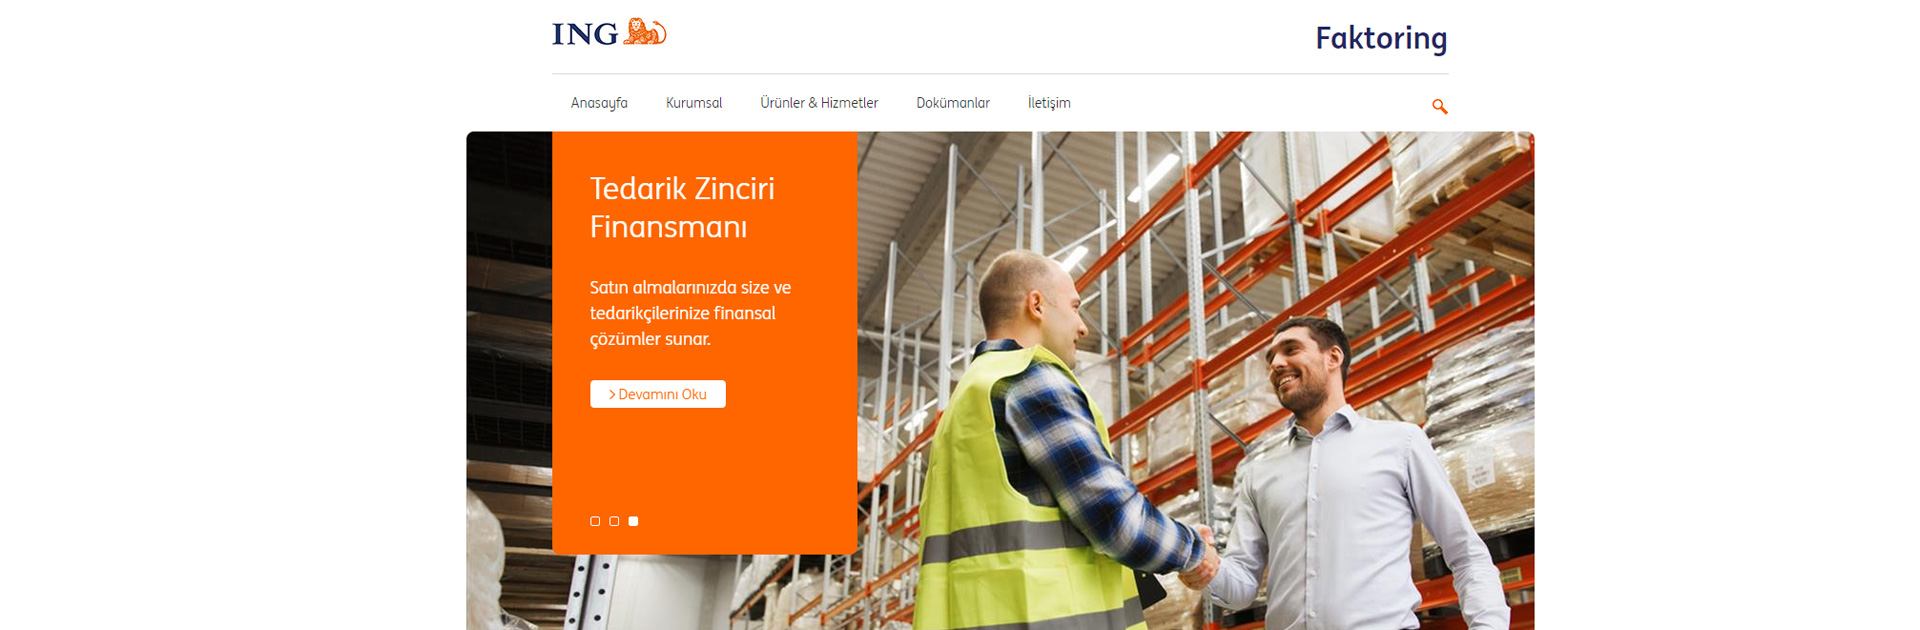 ING Faktoring's Corporate Website Taken Live